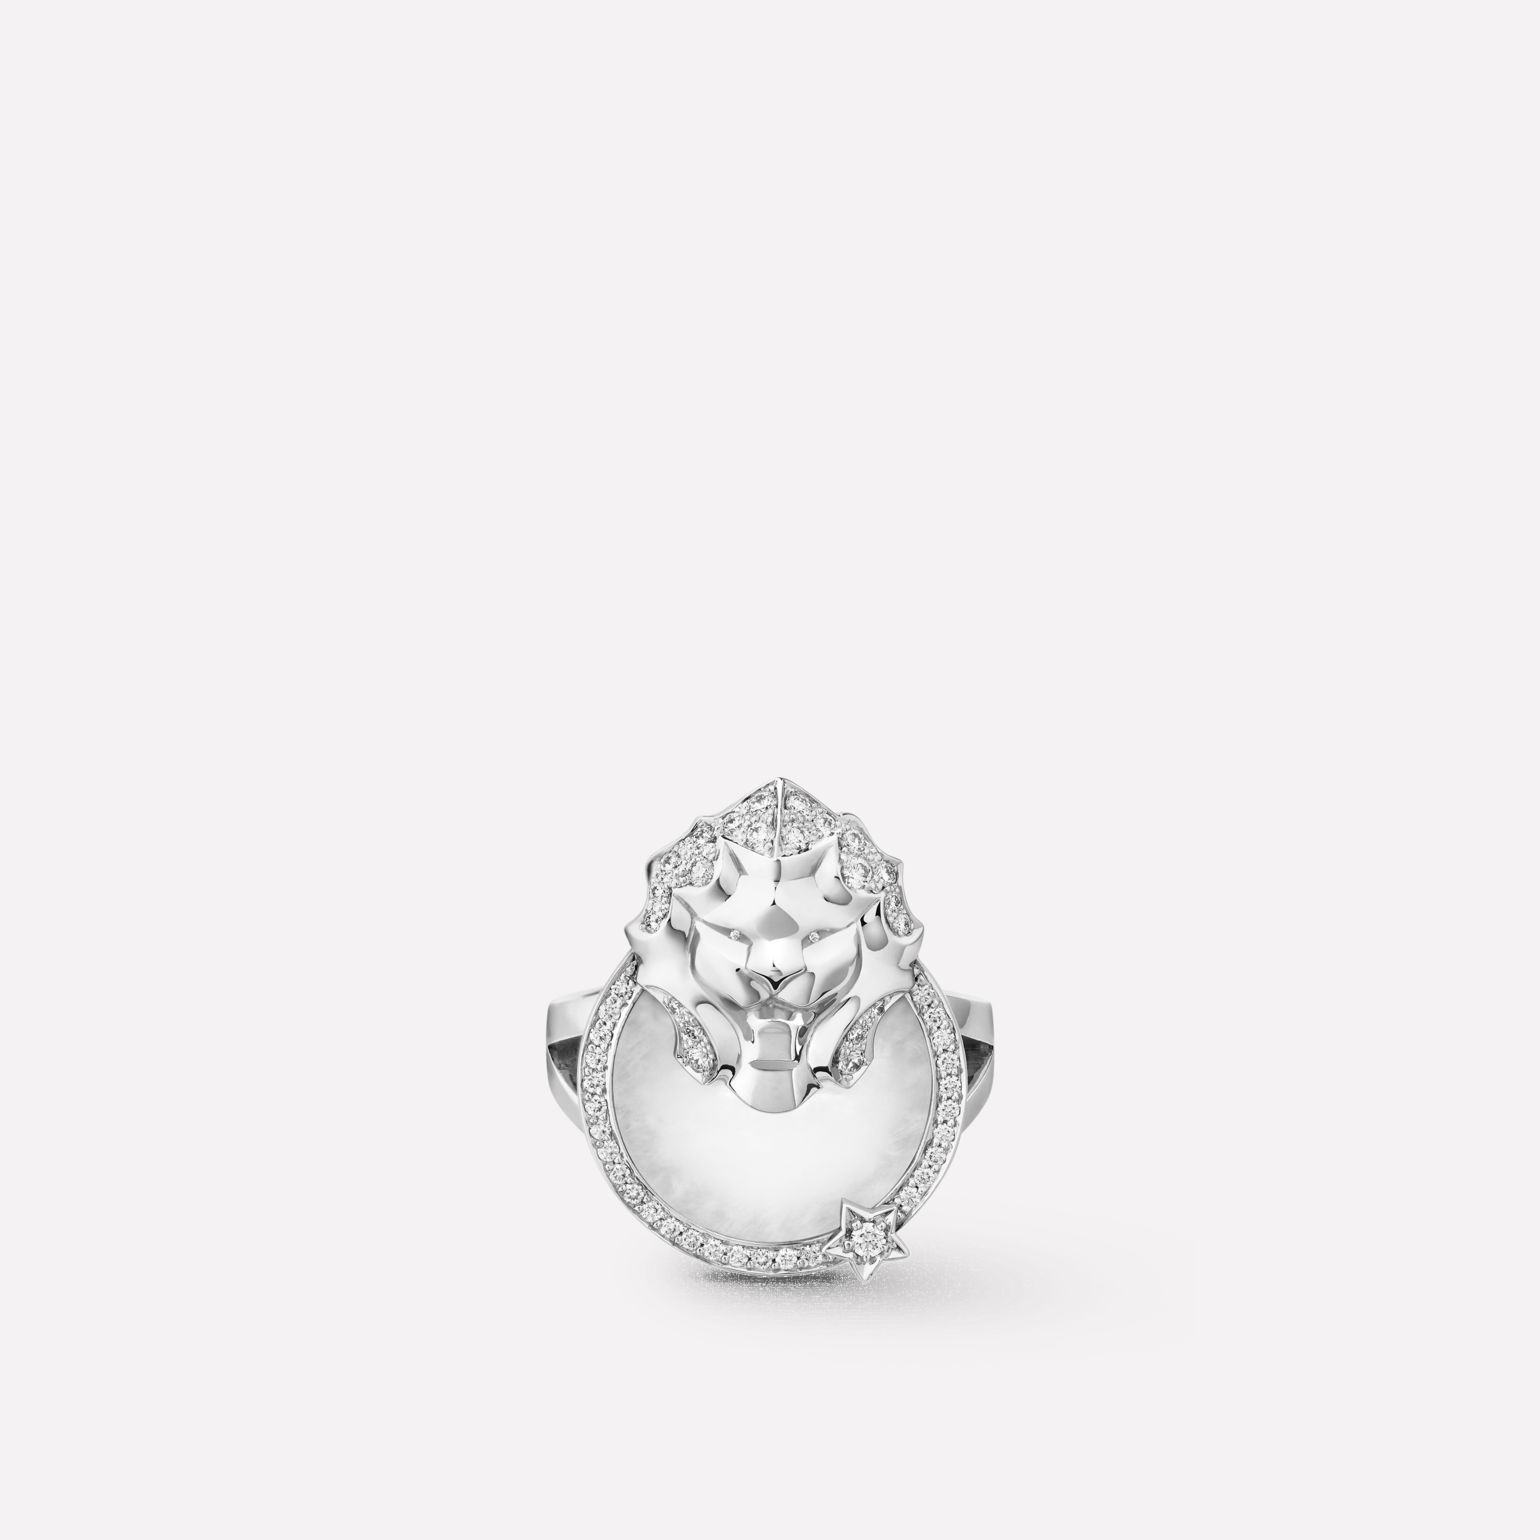 Lion Médaille ring 18K white gold, diamonds, quartz